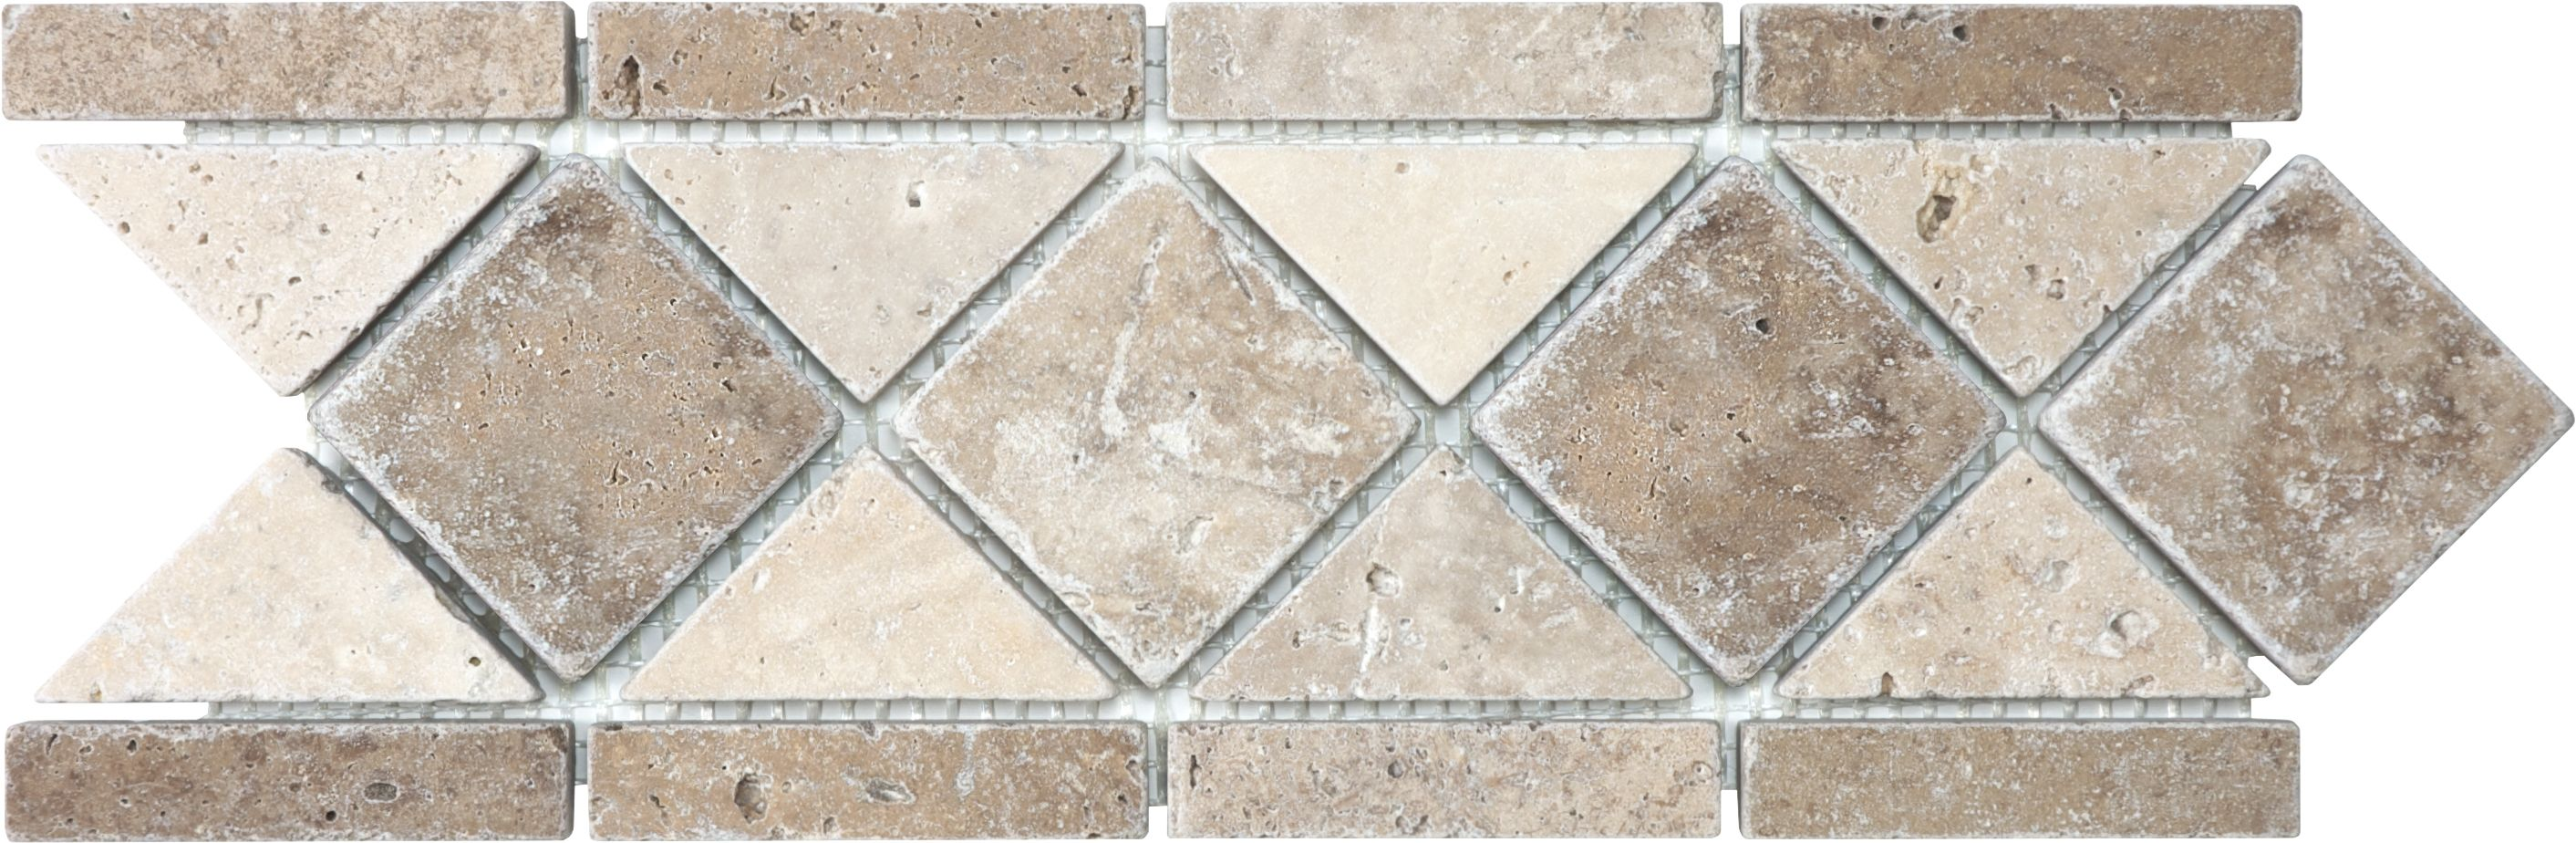 Anatolia Tile Noce And Chiaro Travertine Listello Tile